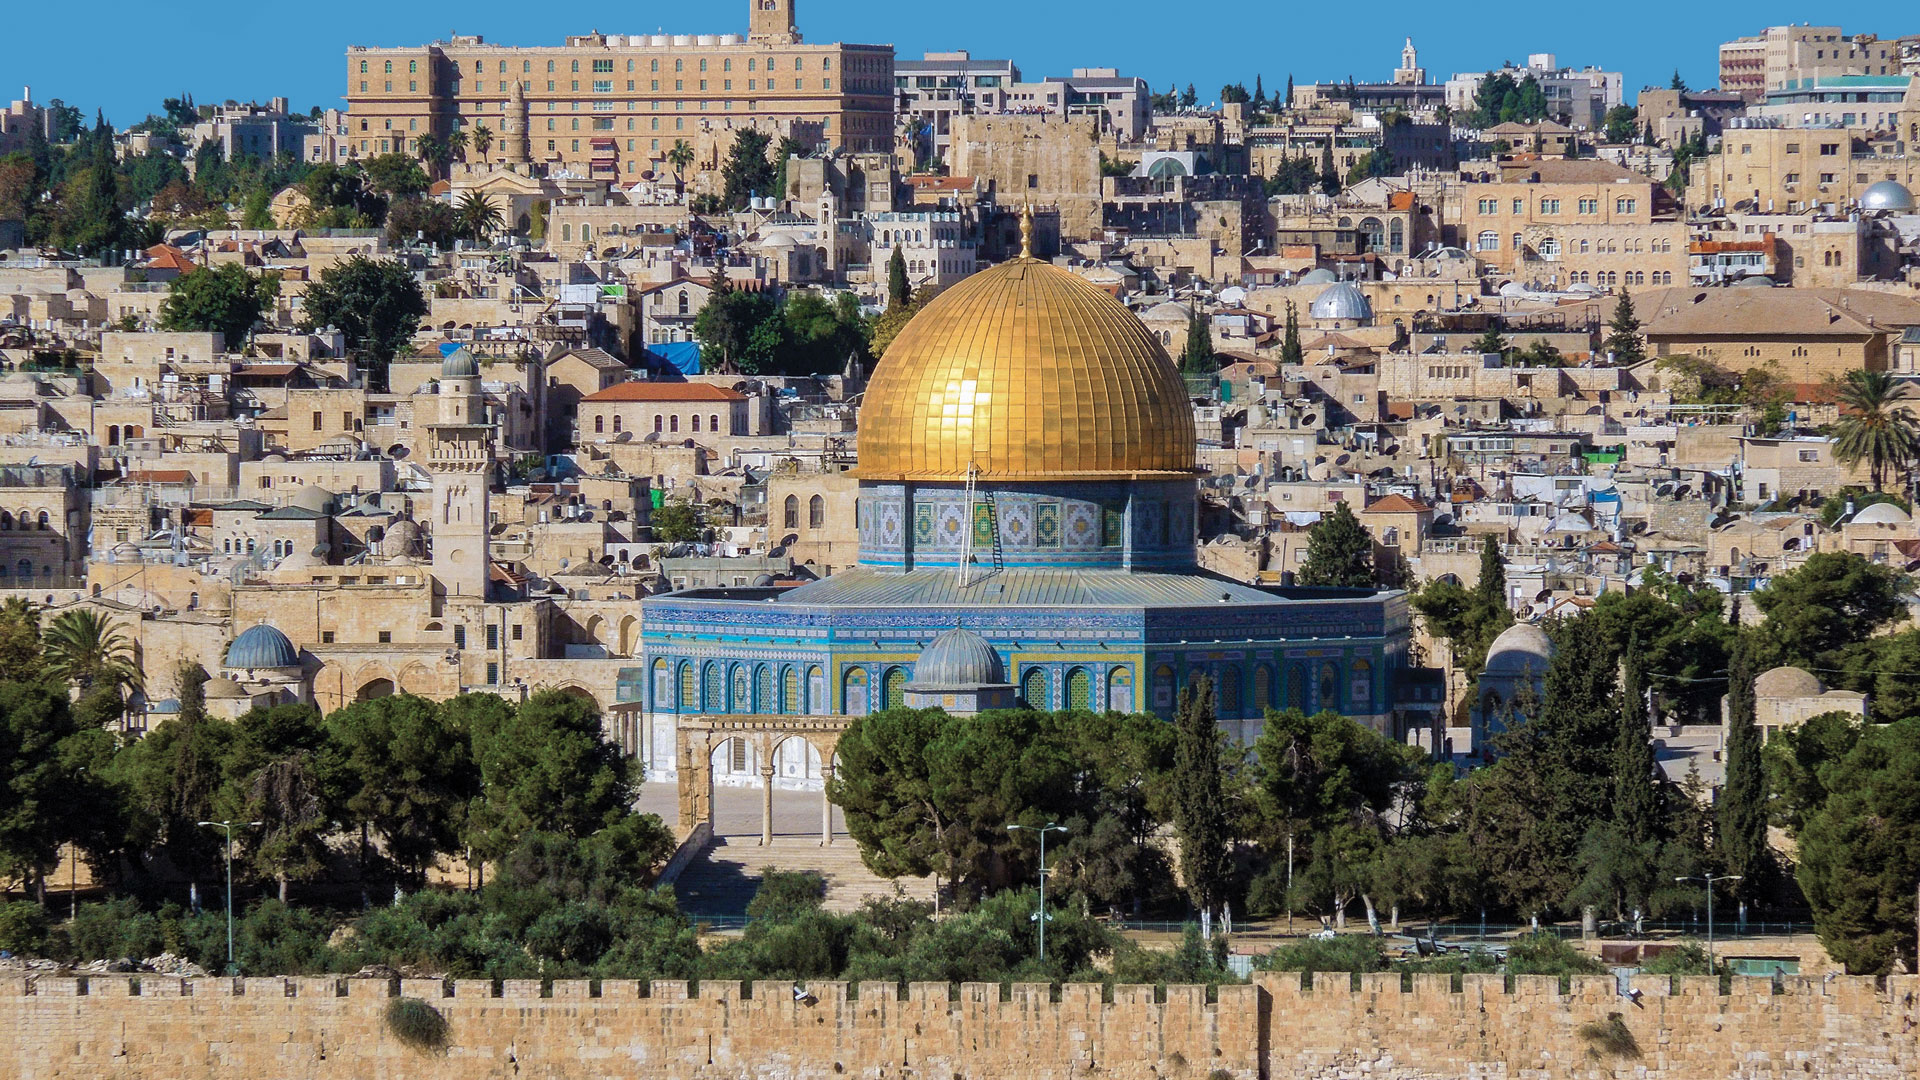 Rick Steves' Special: The Holy Land, Israeli and Palestinian